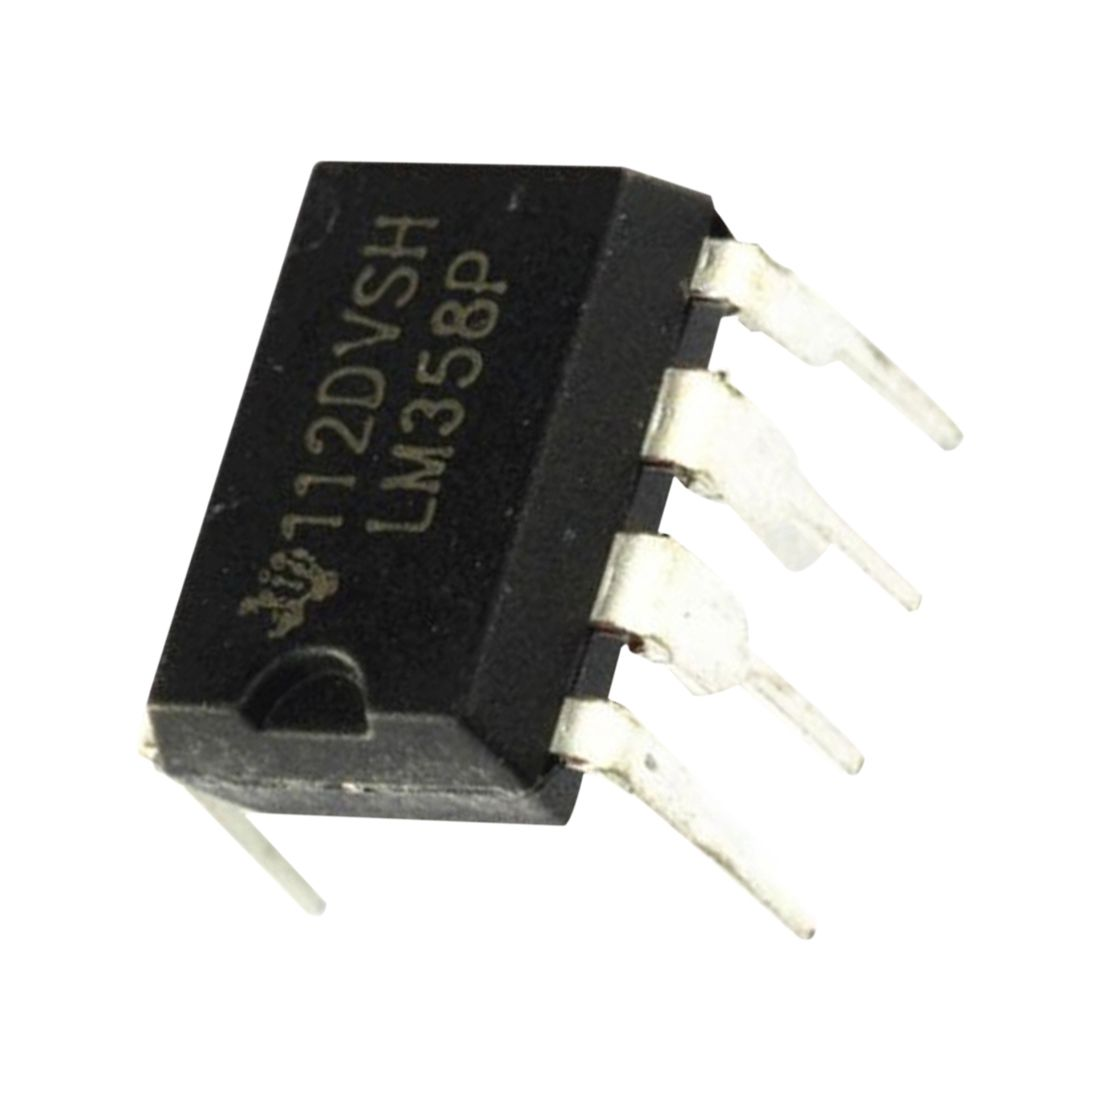 50Pcs LM358P LM358N LM358 DIP-8 OPERATIONAL AMPLIFIERS IC